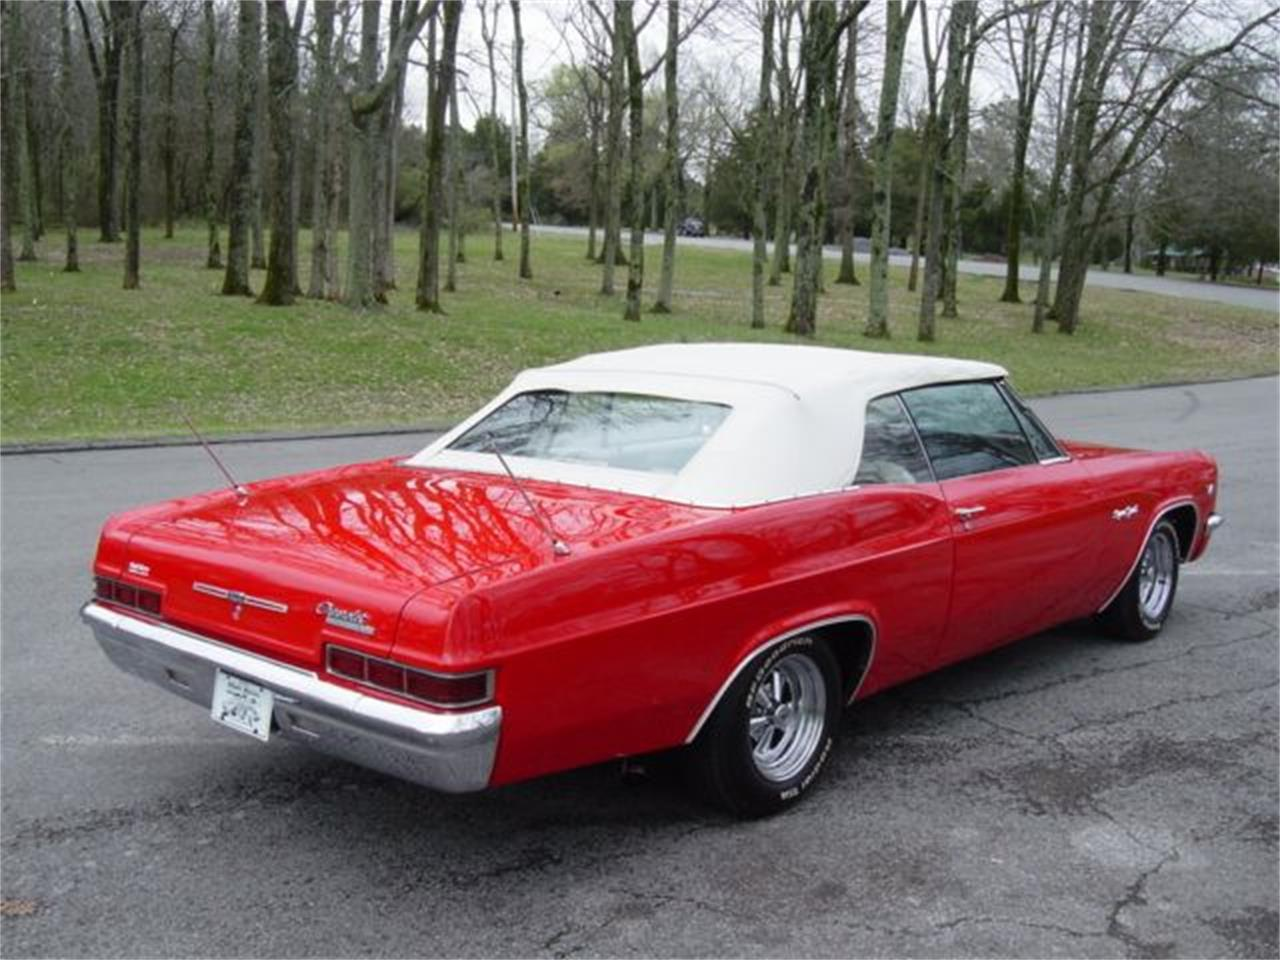 1966 Chevrolet Impala SS (CC-1335353) for sale in Hendersonville, Tennessee